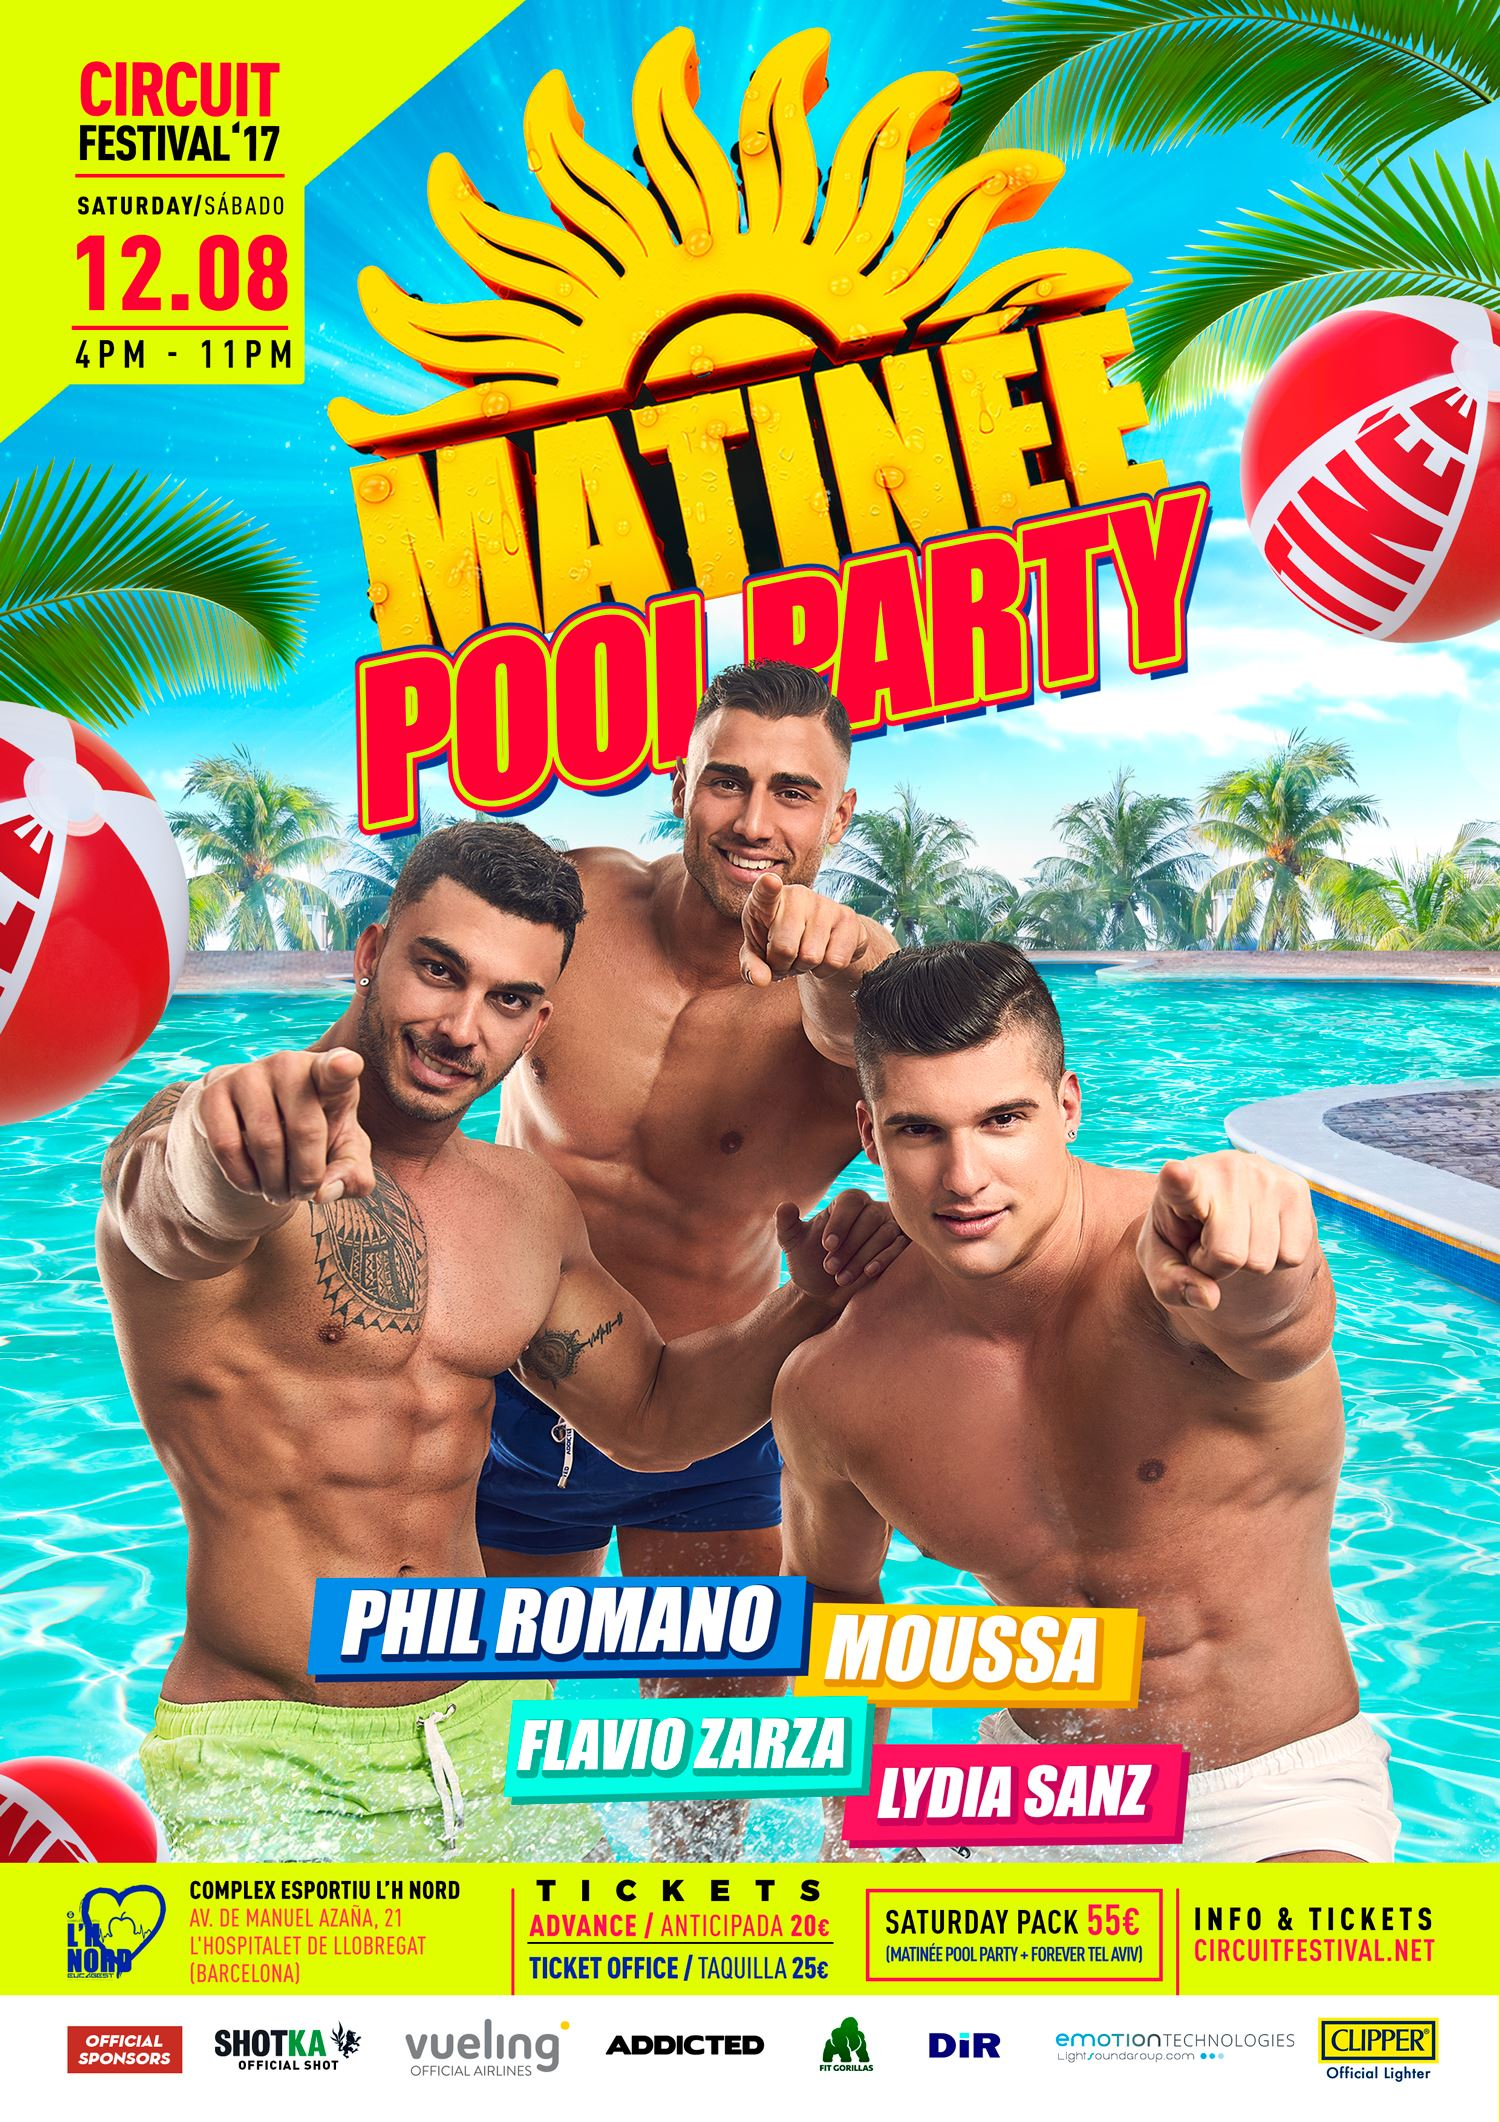 7-Circuit17_MAIN-POOL-PARTY